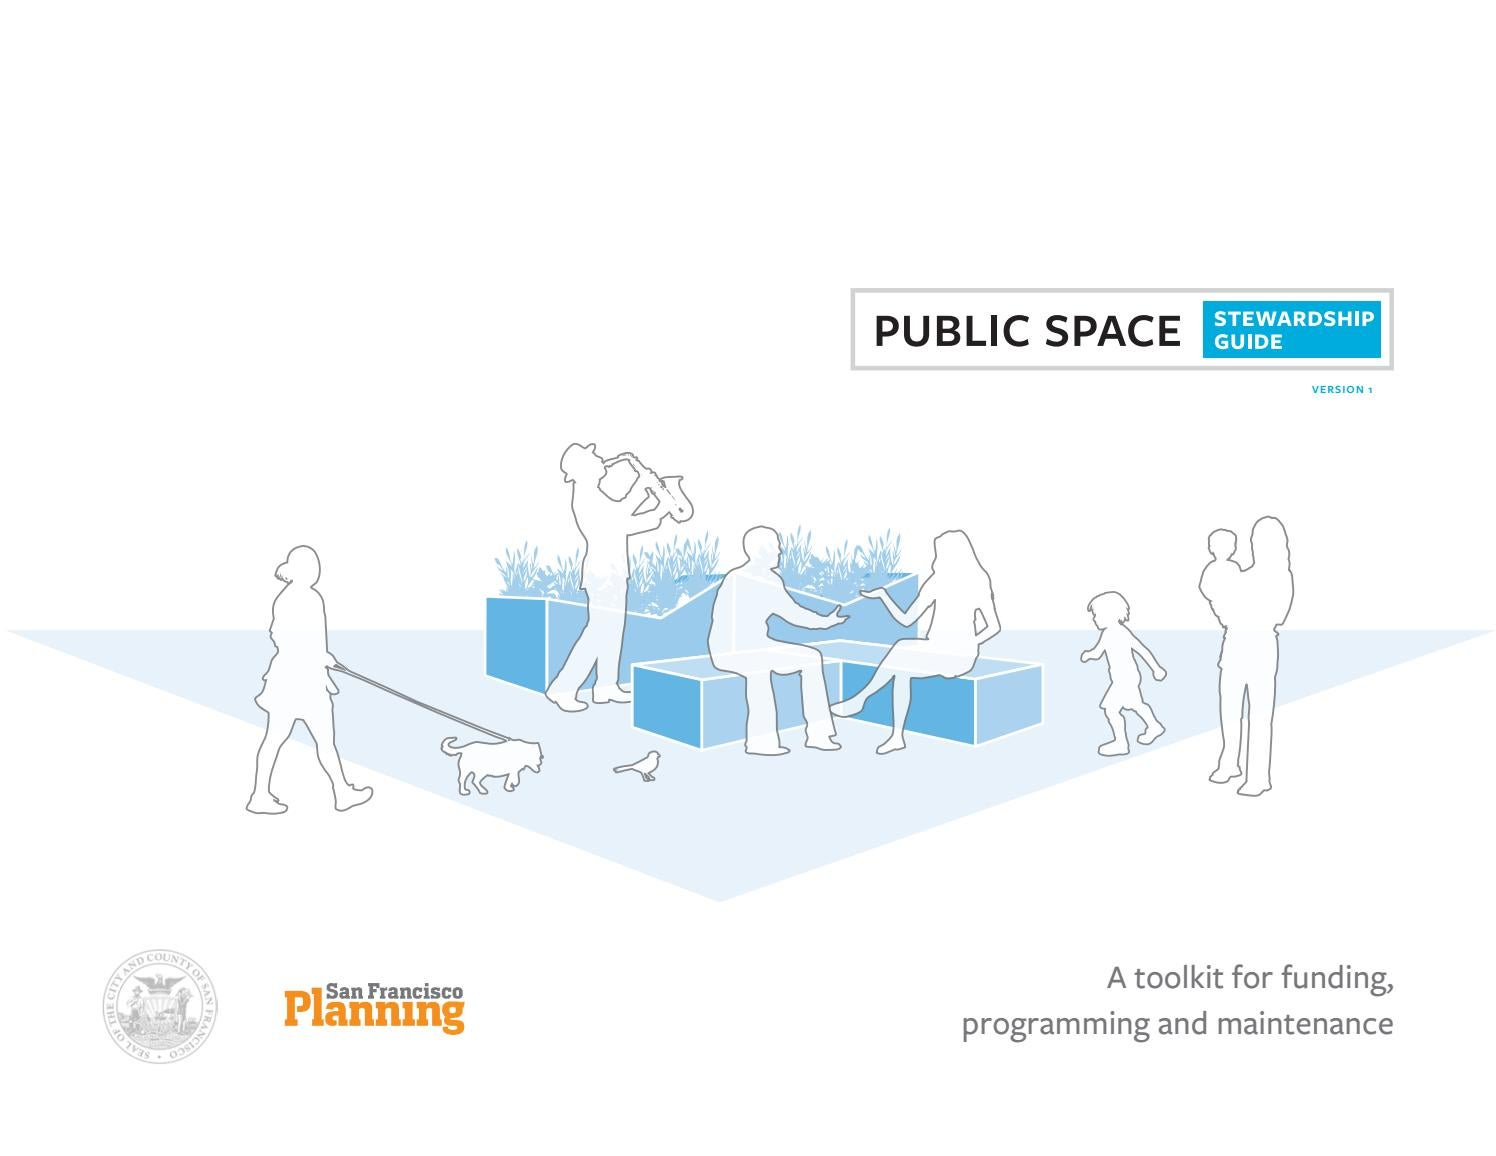 Public Space Stewardship Guide by The Street Plans